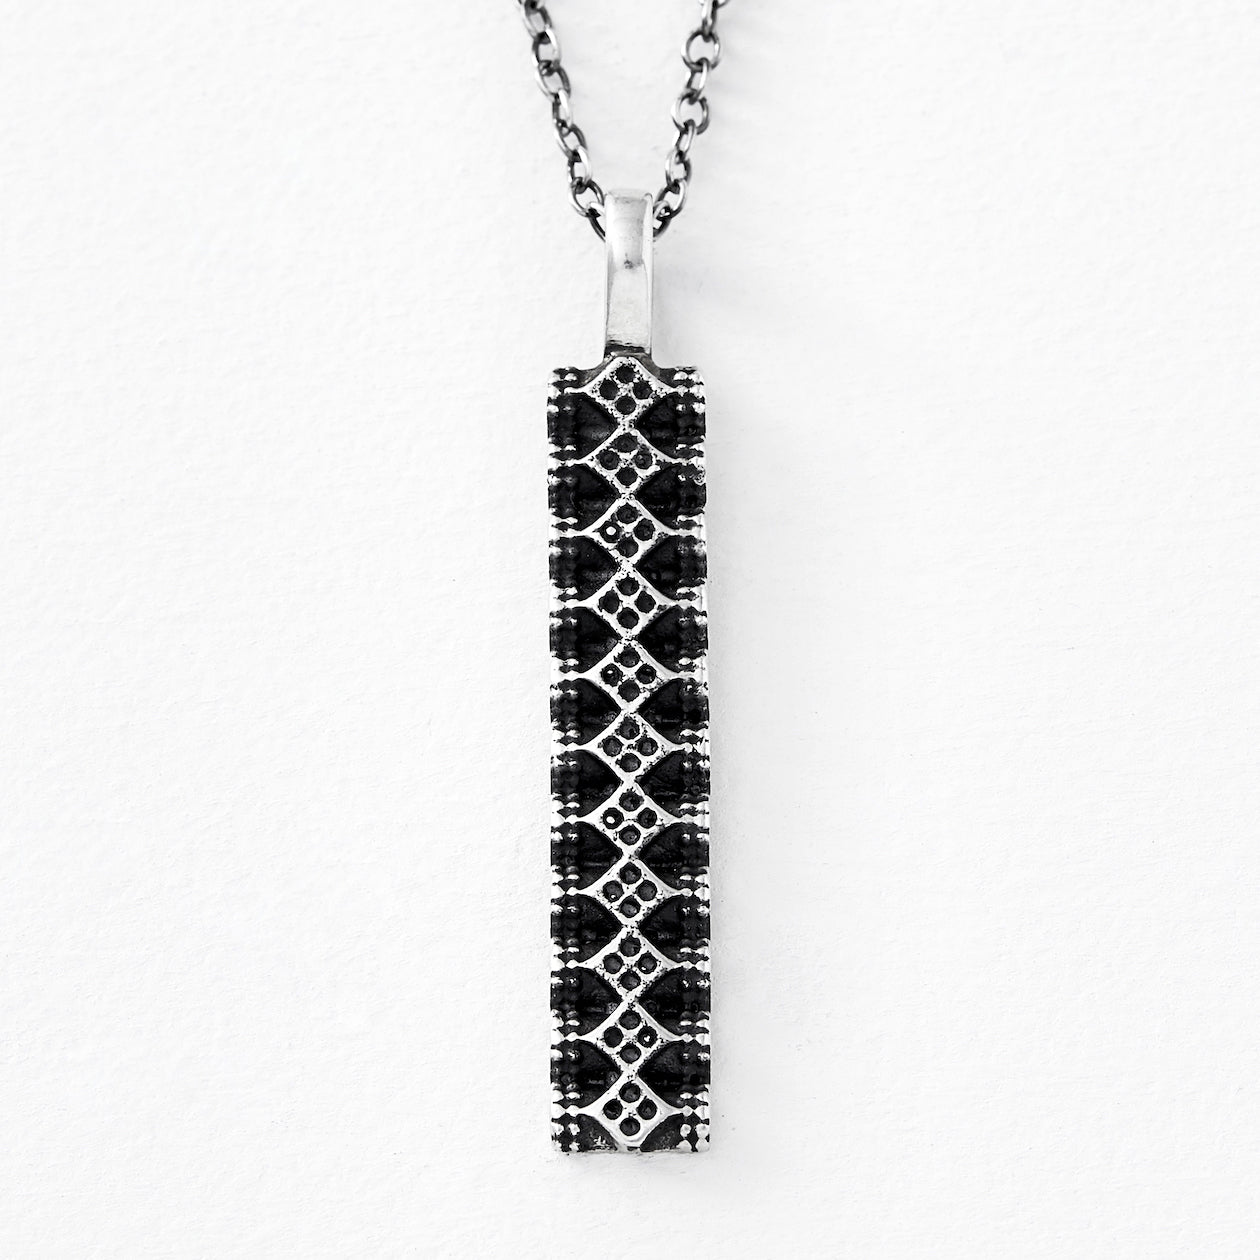 shielded pendant oxidized silver